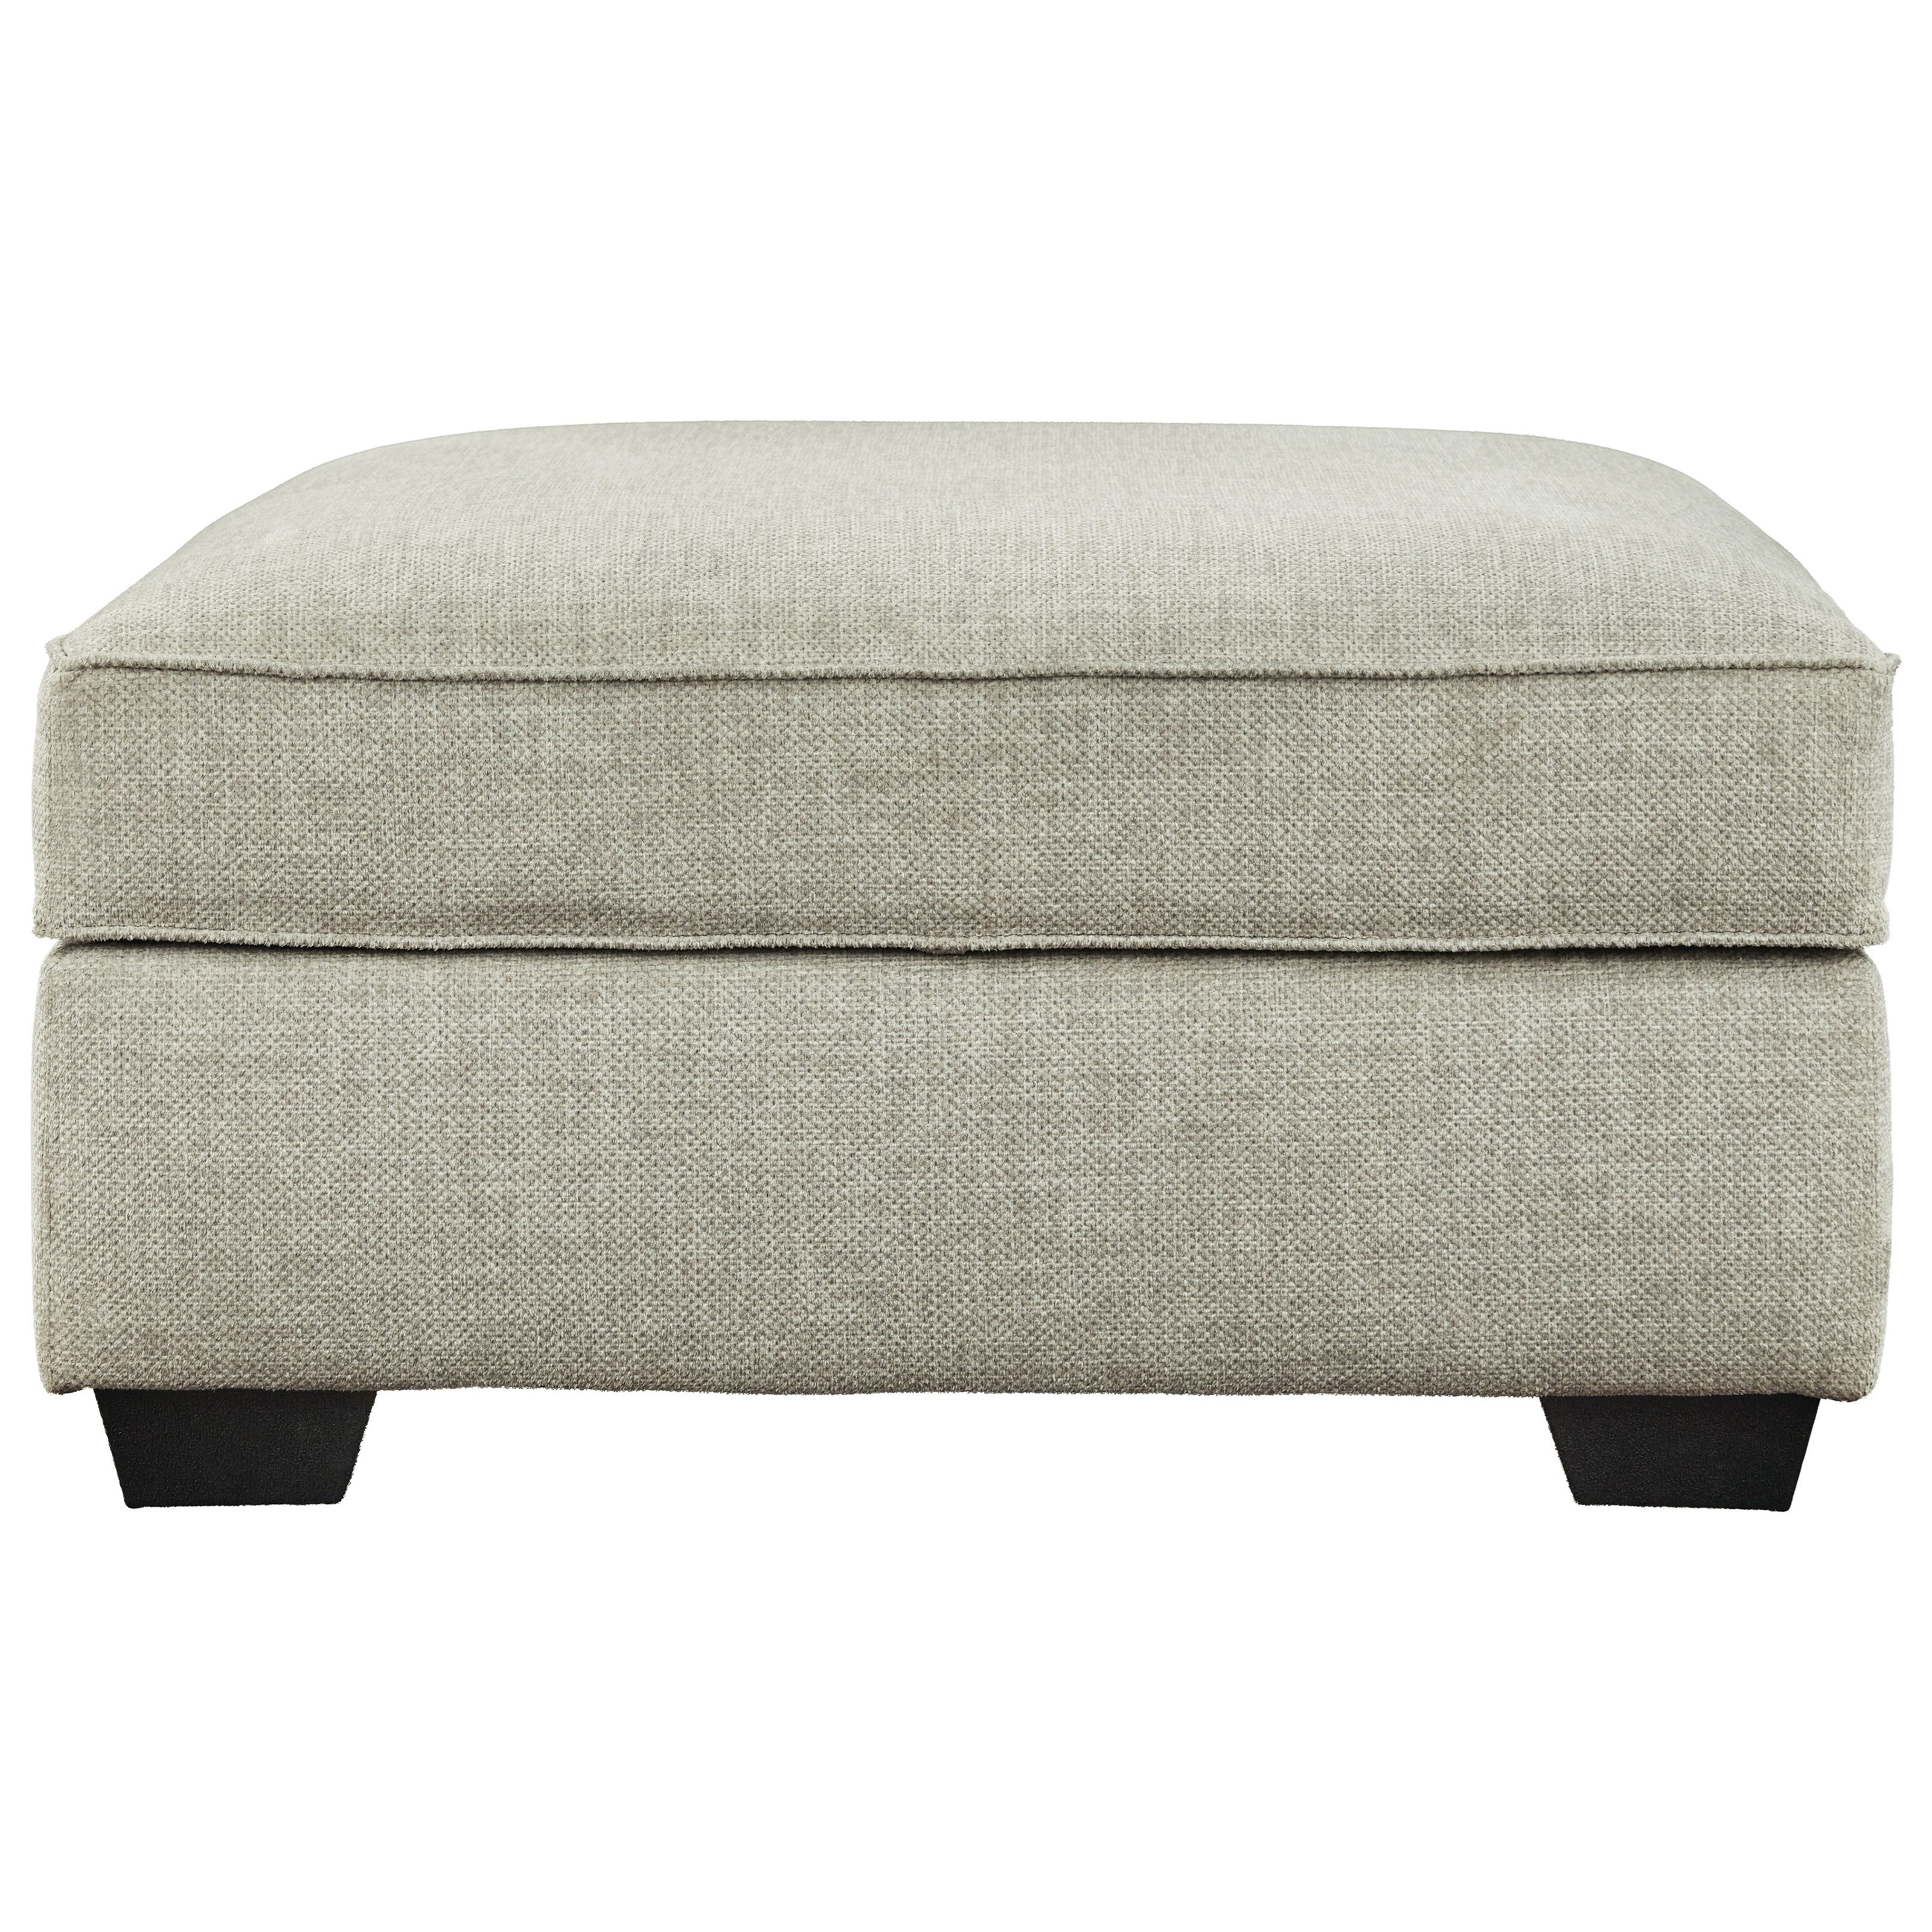 Wellhaven Ottoman with Storage by Benchcraft at Walker's Furniture